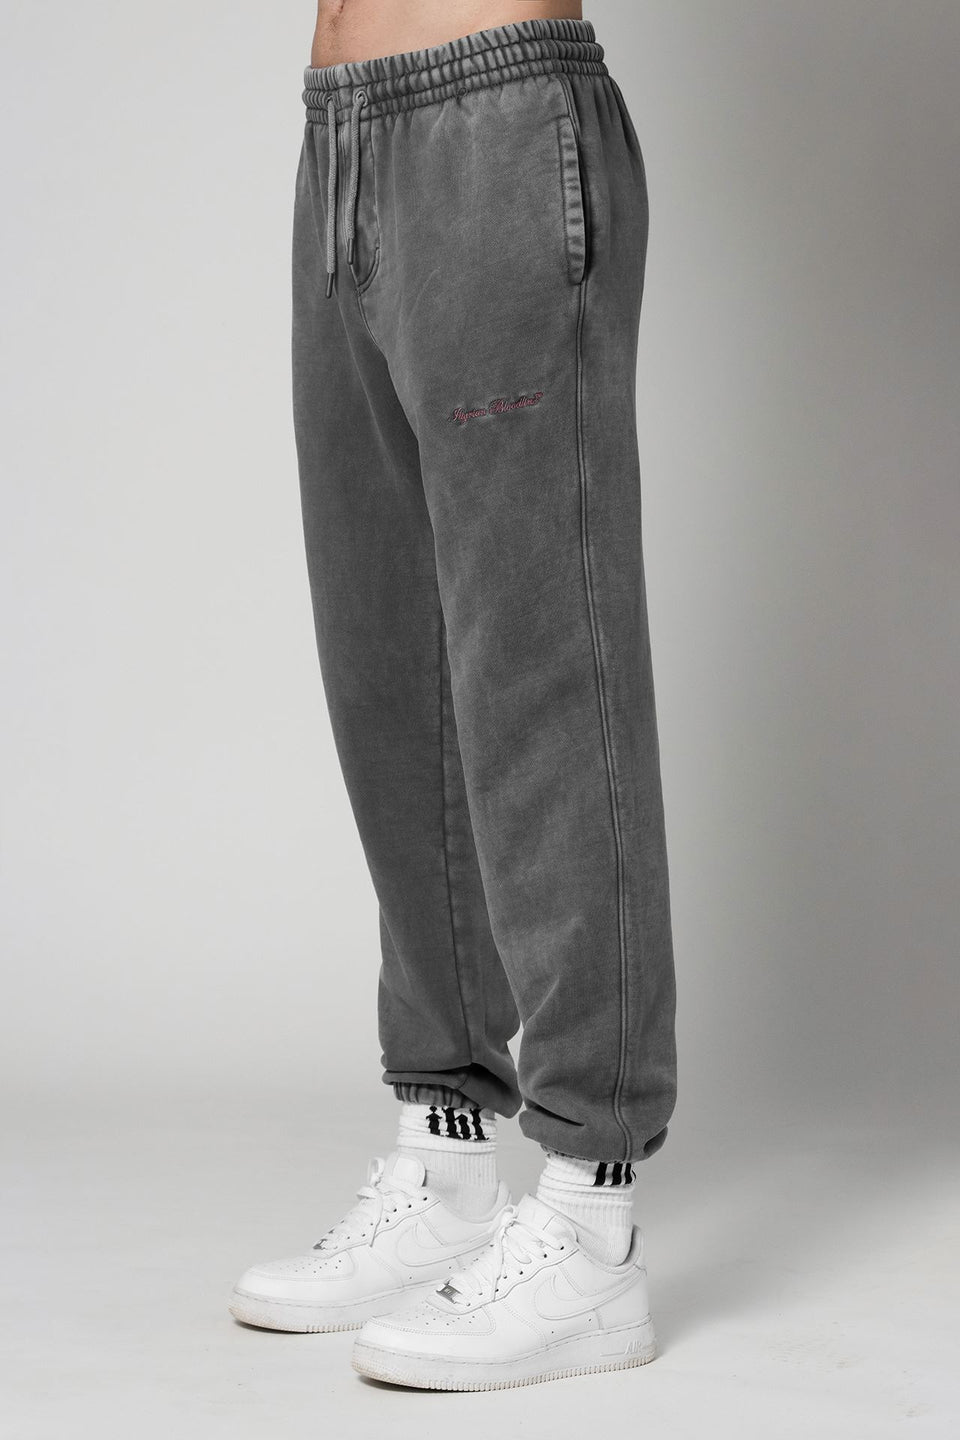 FW21 Washed Out Joggers